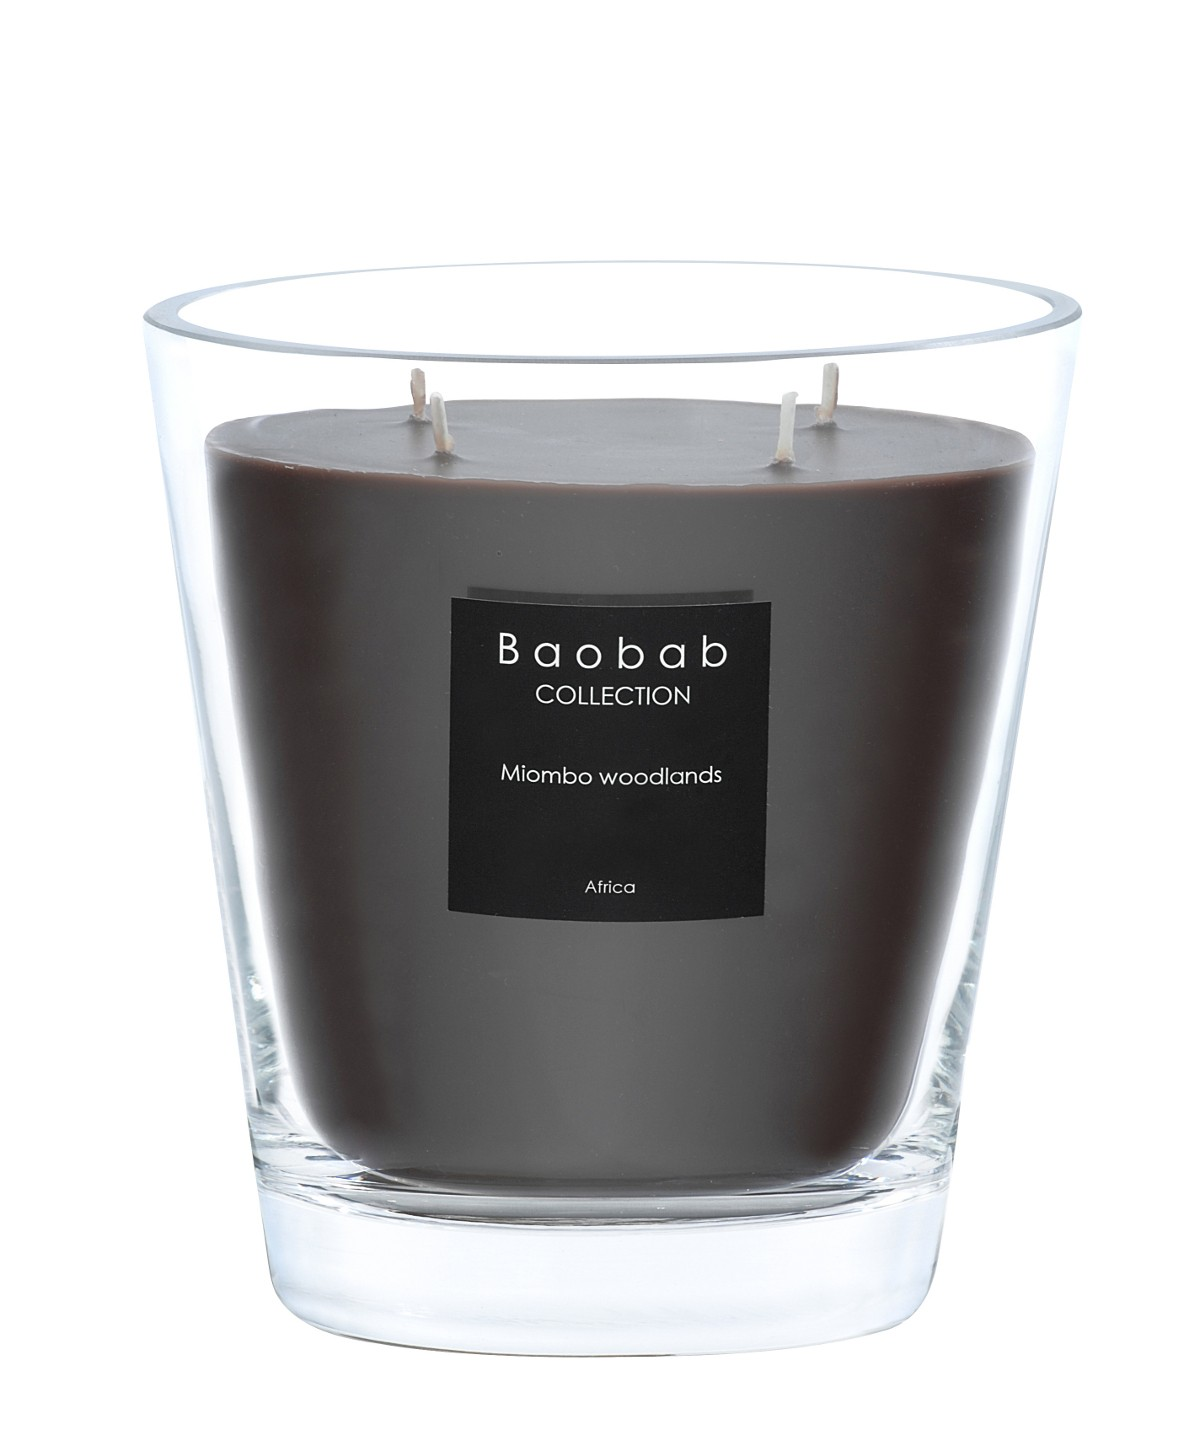 Bougie Baobab Paris Bougie Max 16 Miombo Woodlands De Baobab Collection